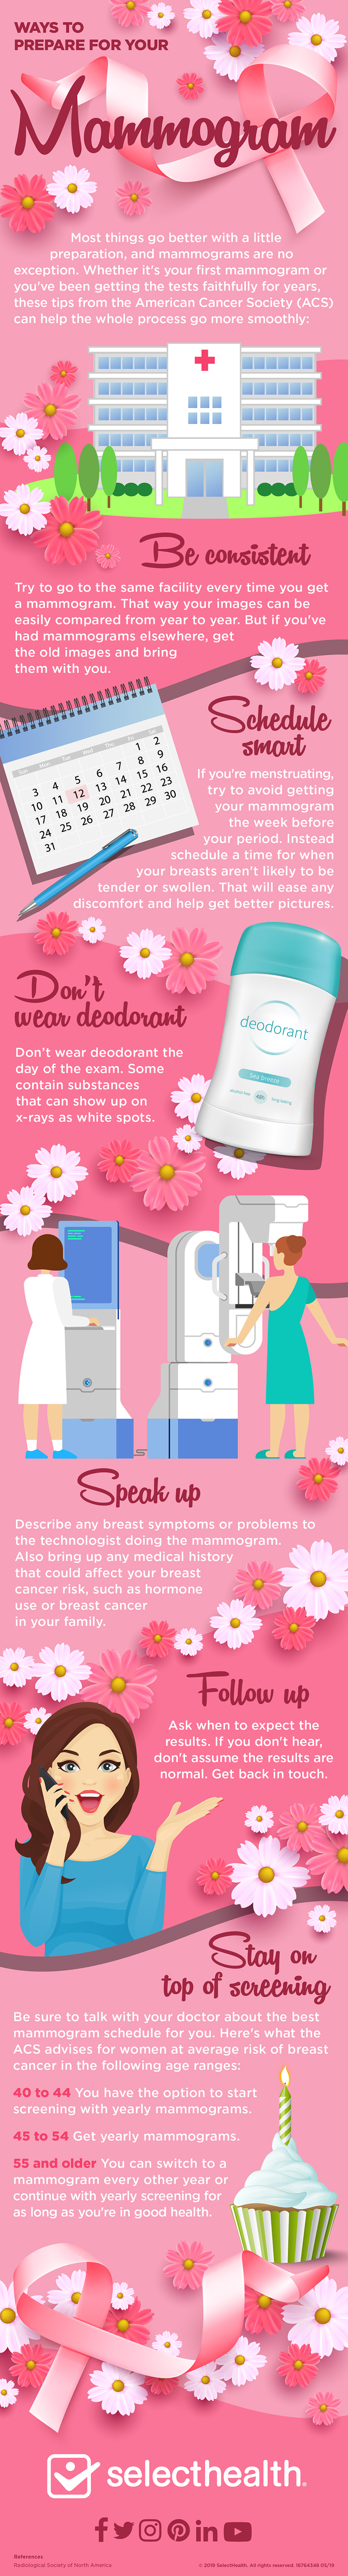 How to prepare for a mammogram infographic, Lg